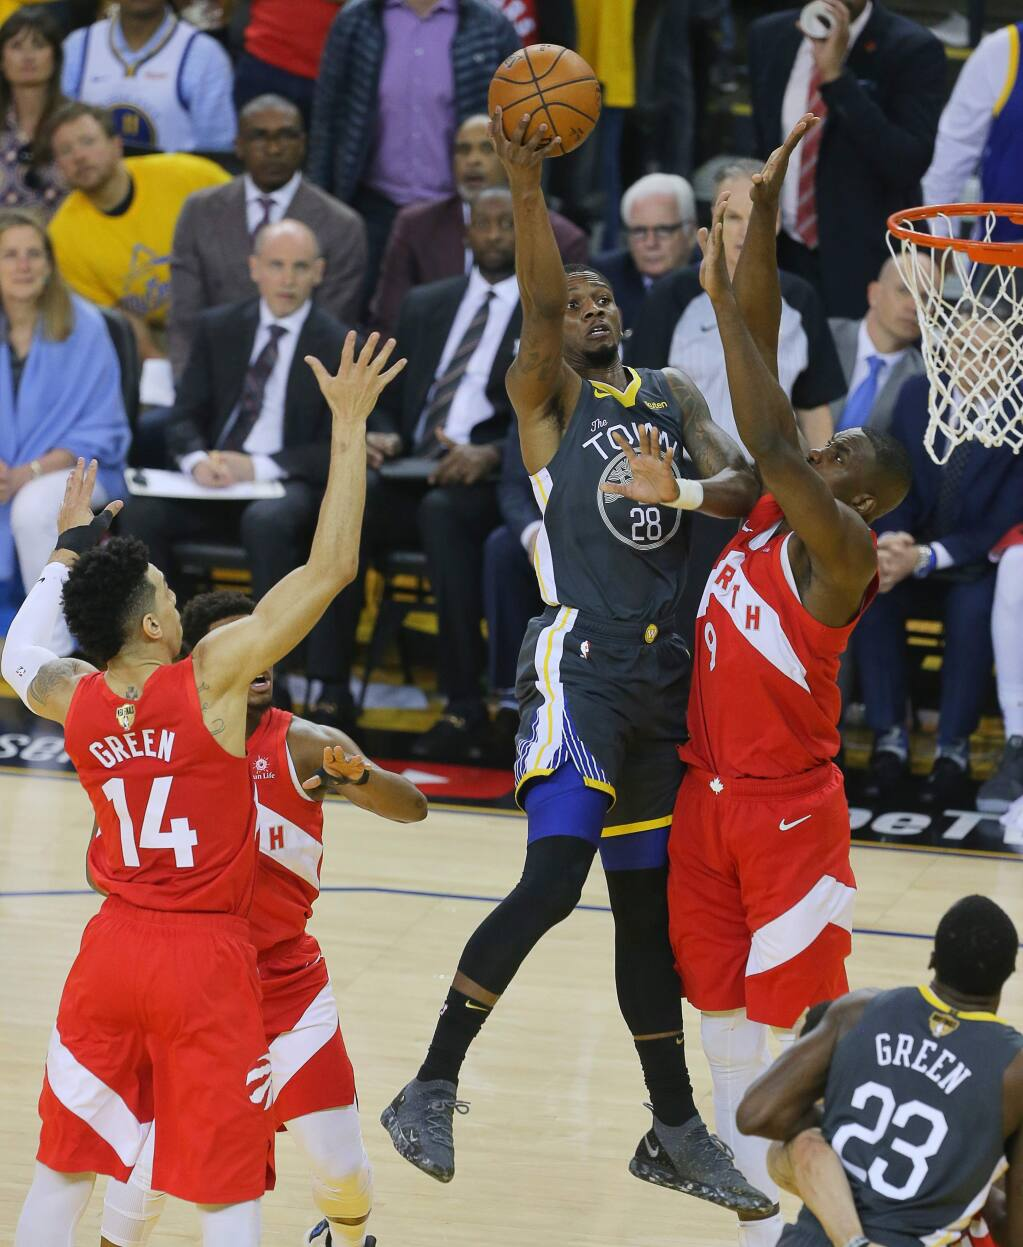 Golden State Warriors forward Alfonzo McKinnie shoots over Toronto Raptors center Serge Ibaka during Game 4 of the NBA Finals in Oakland on Friday, June 7, 2019. (Christopher Chung / The Press Democrat)